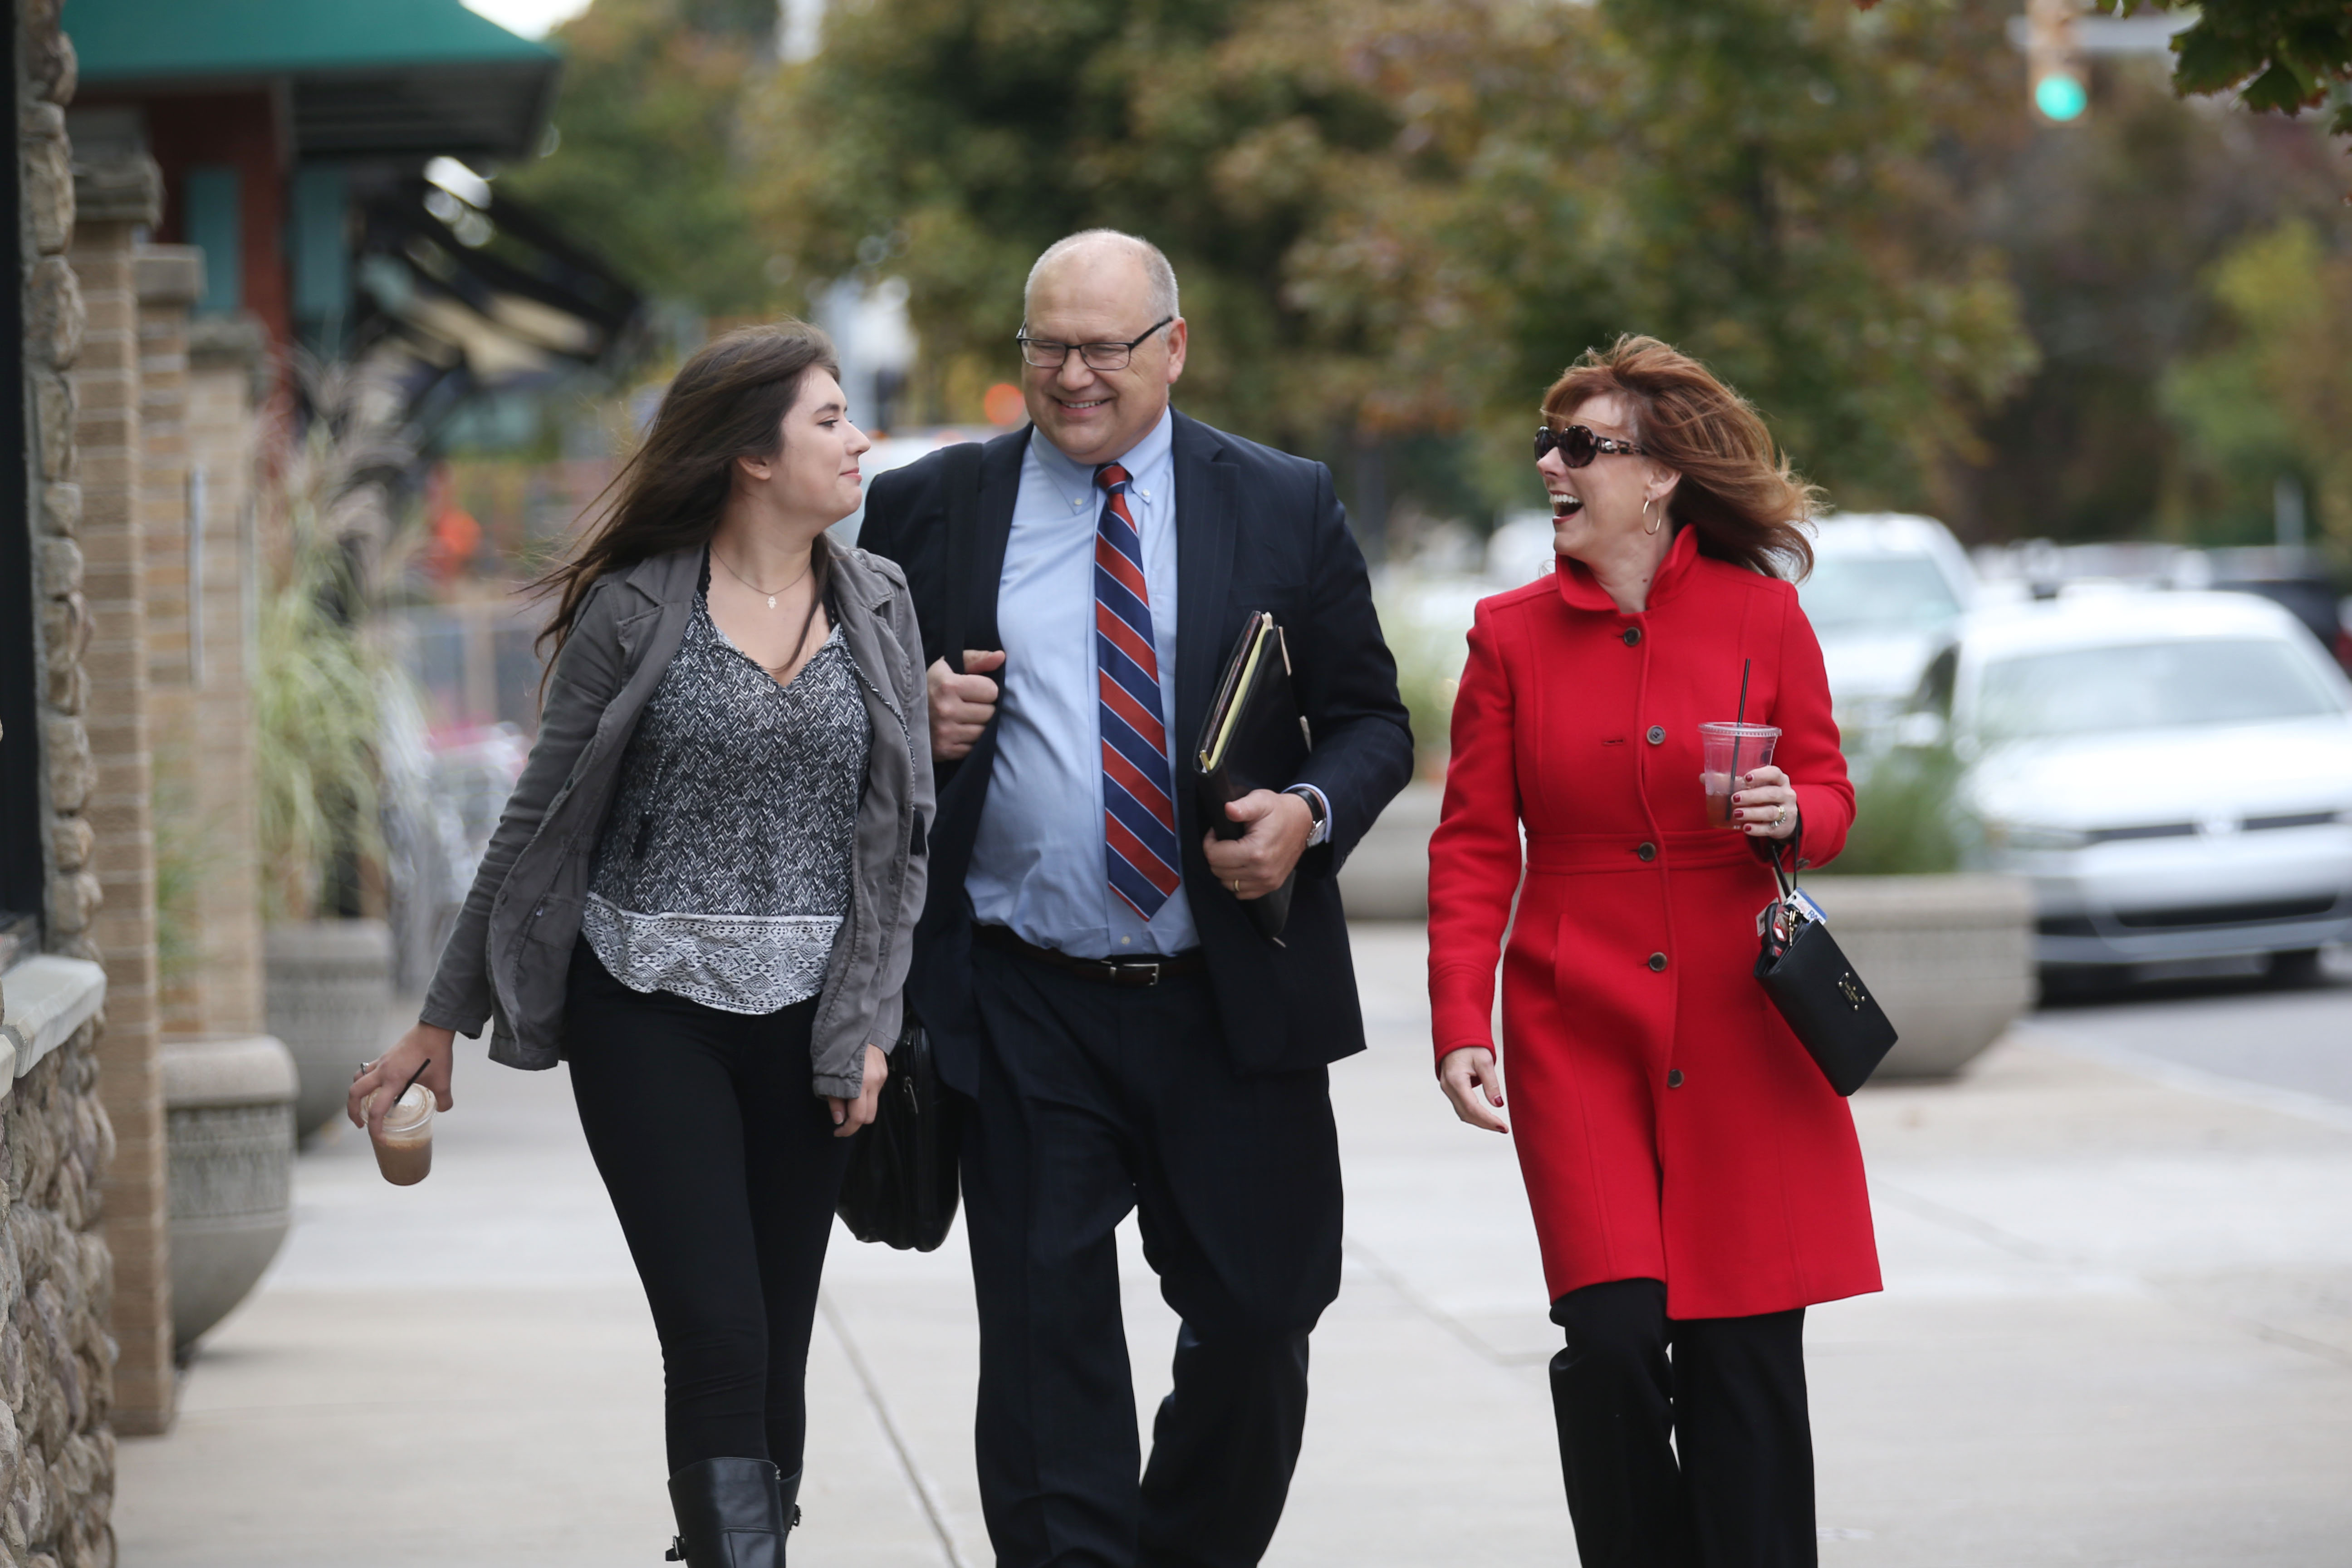 Buffalo attorney Dan Lukasik, flanked by his daughter, Iliana, and wife, Kelsey, is among those in Western New York with depression. Find a link to his story below.  (Sharon Cantillon/Buffalo News file photo)